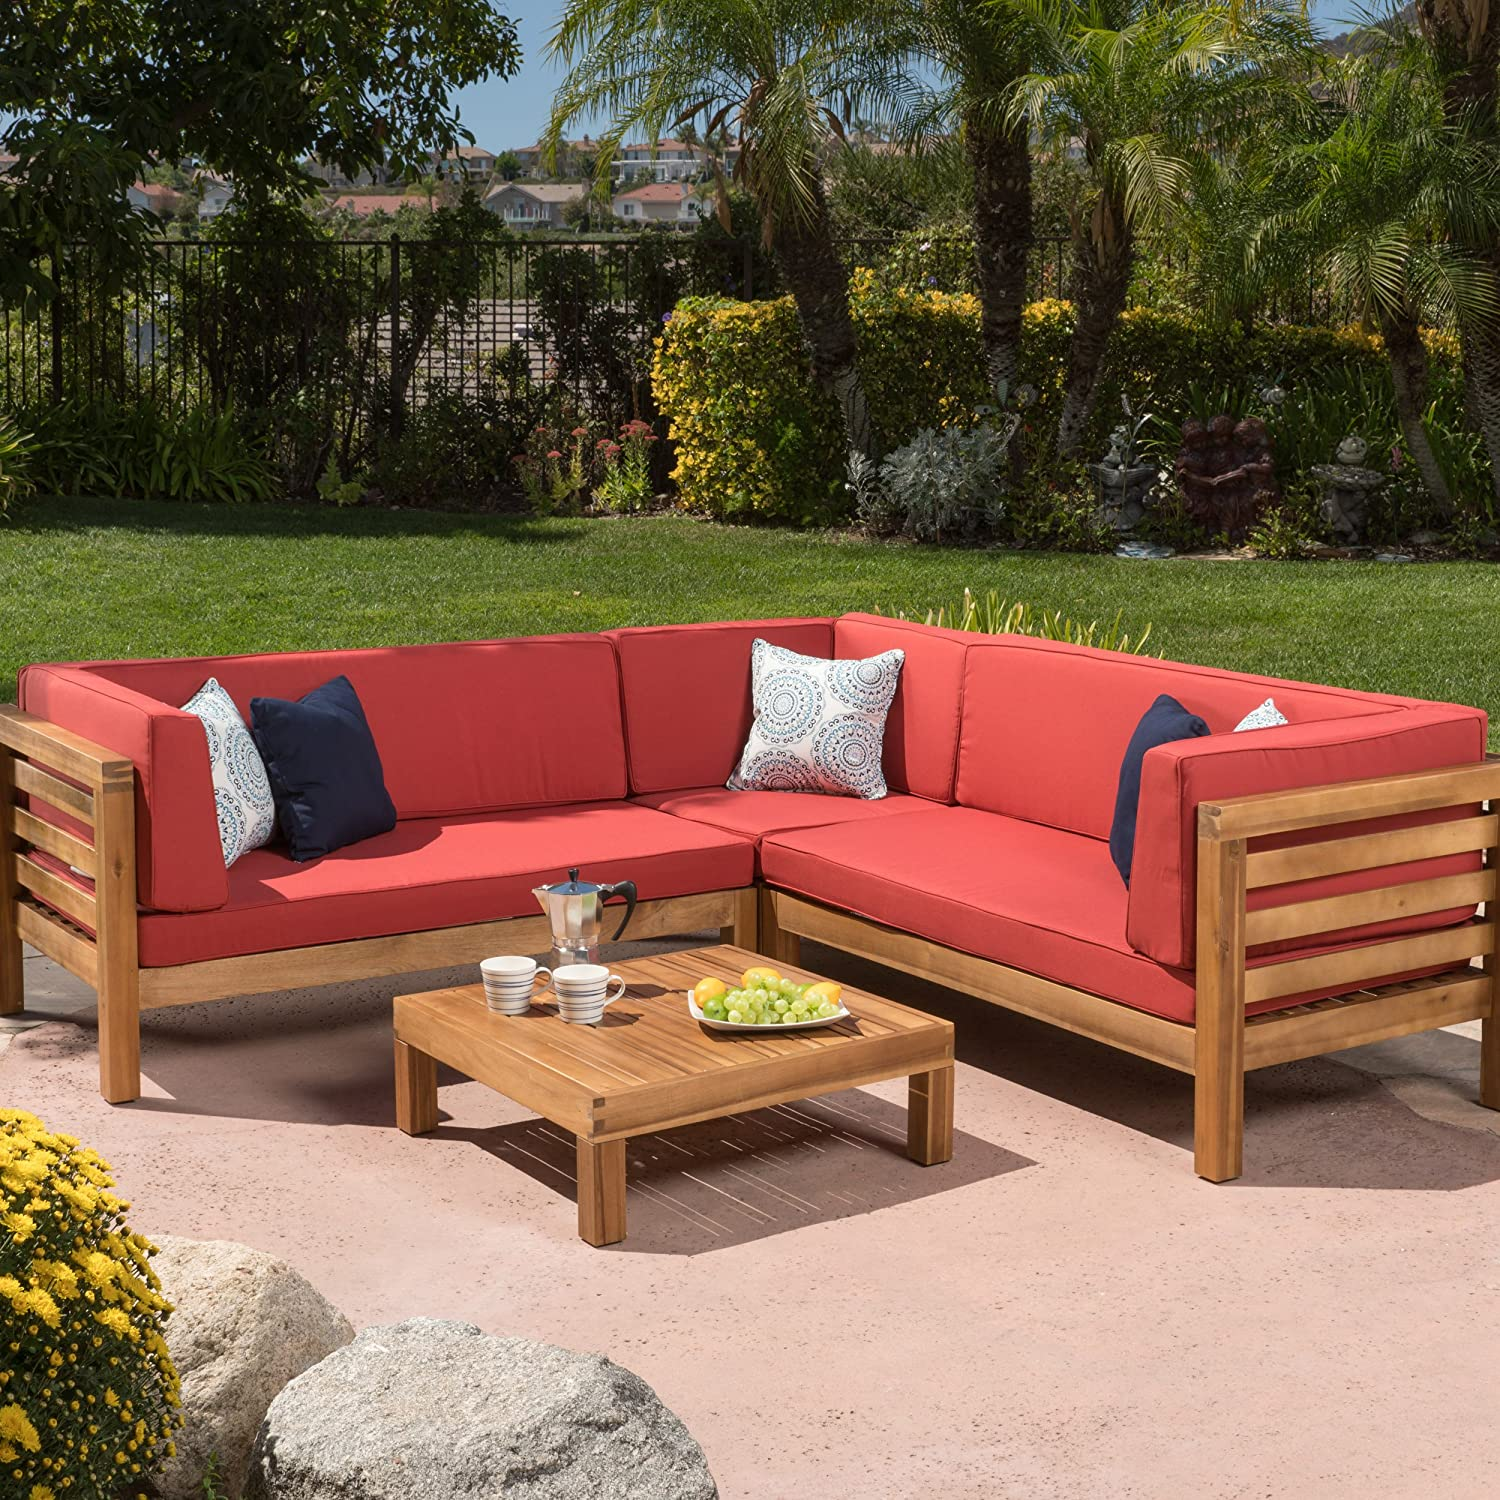 Amazon Ravello Outdoor Patio Furniture 4 Piece Wooden